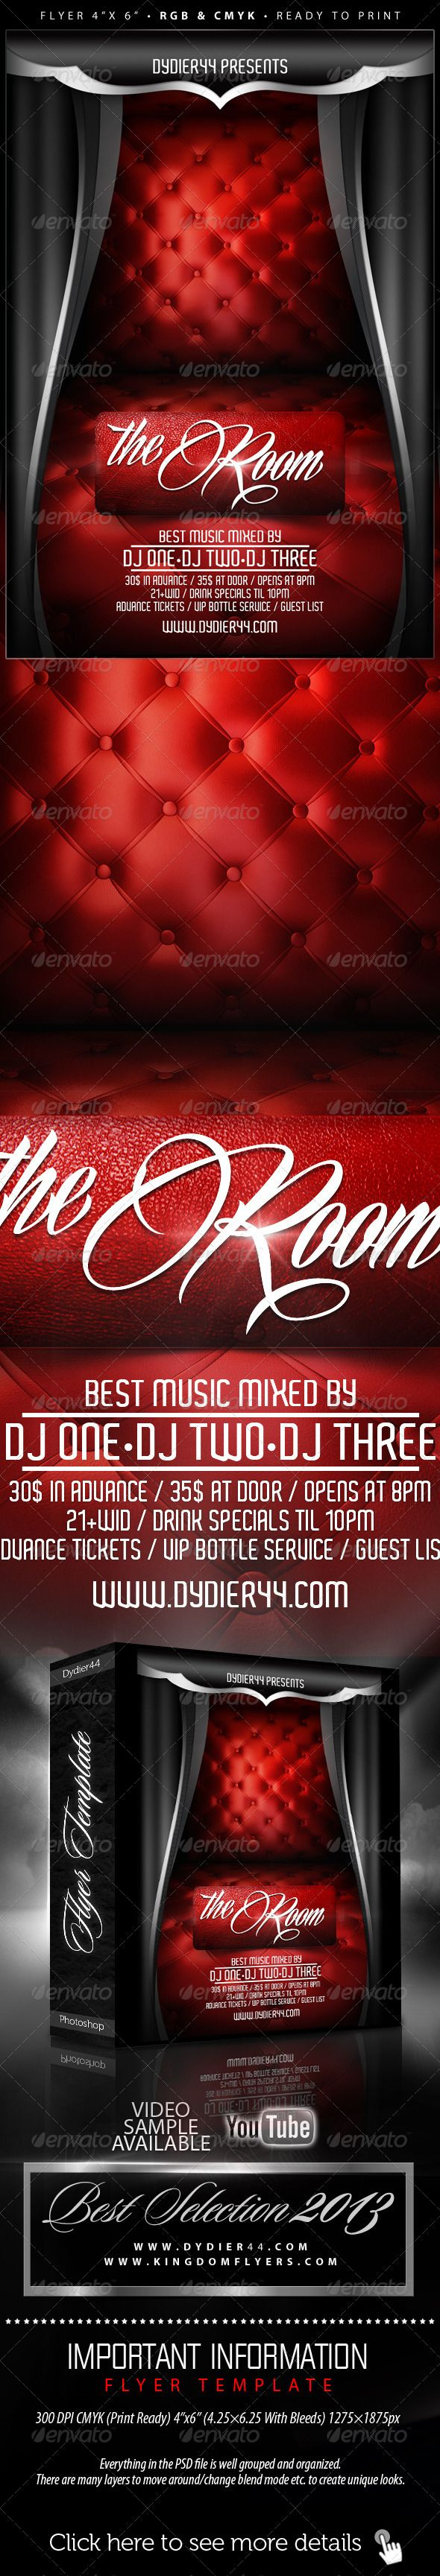 The Room Flyer Template 4x6 Fonts Logos Icons Pinterest